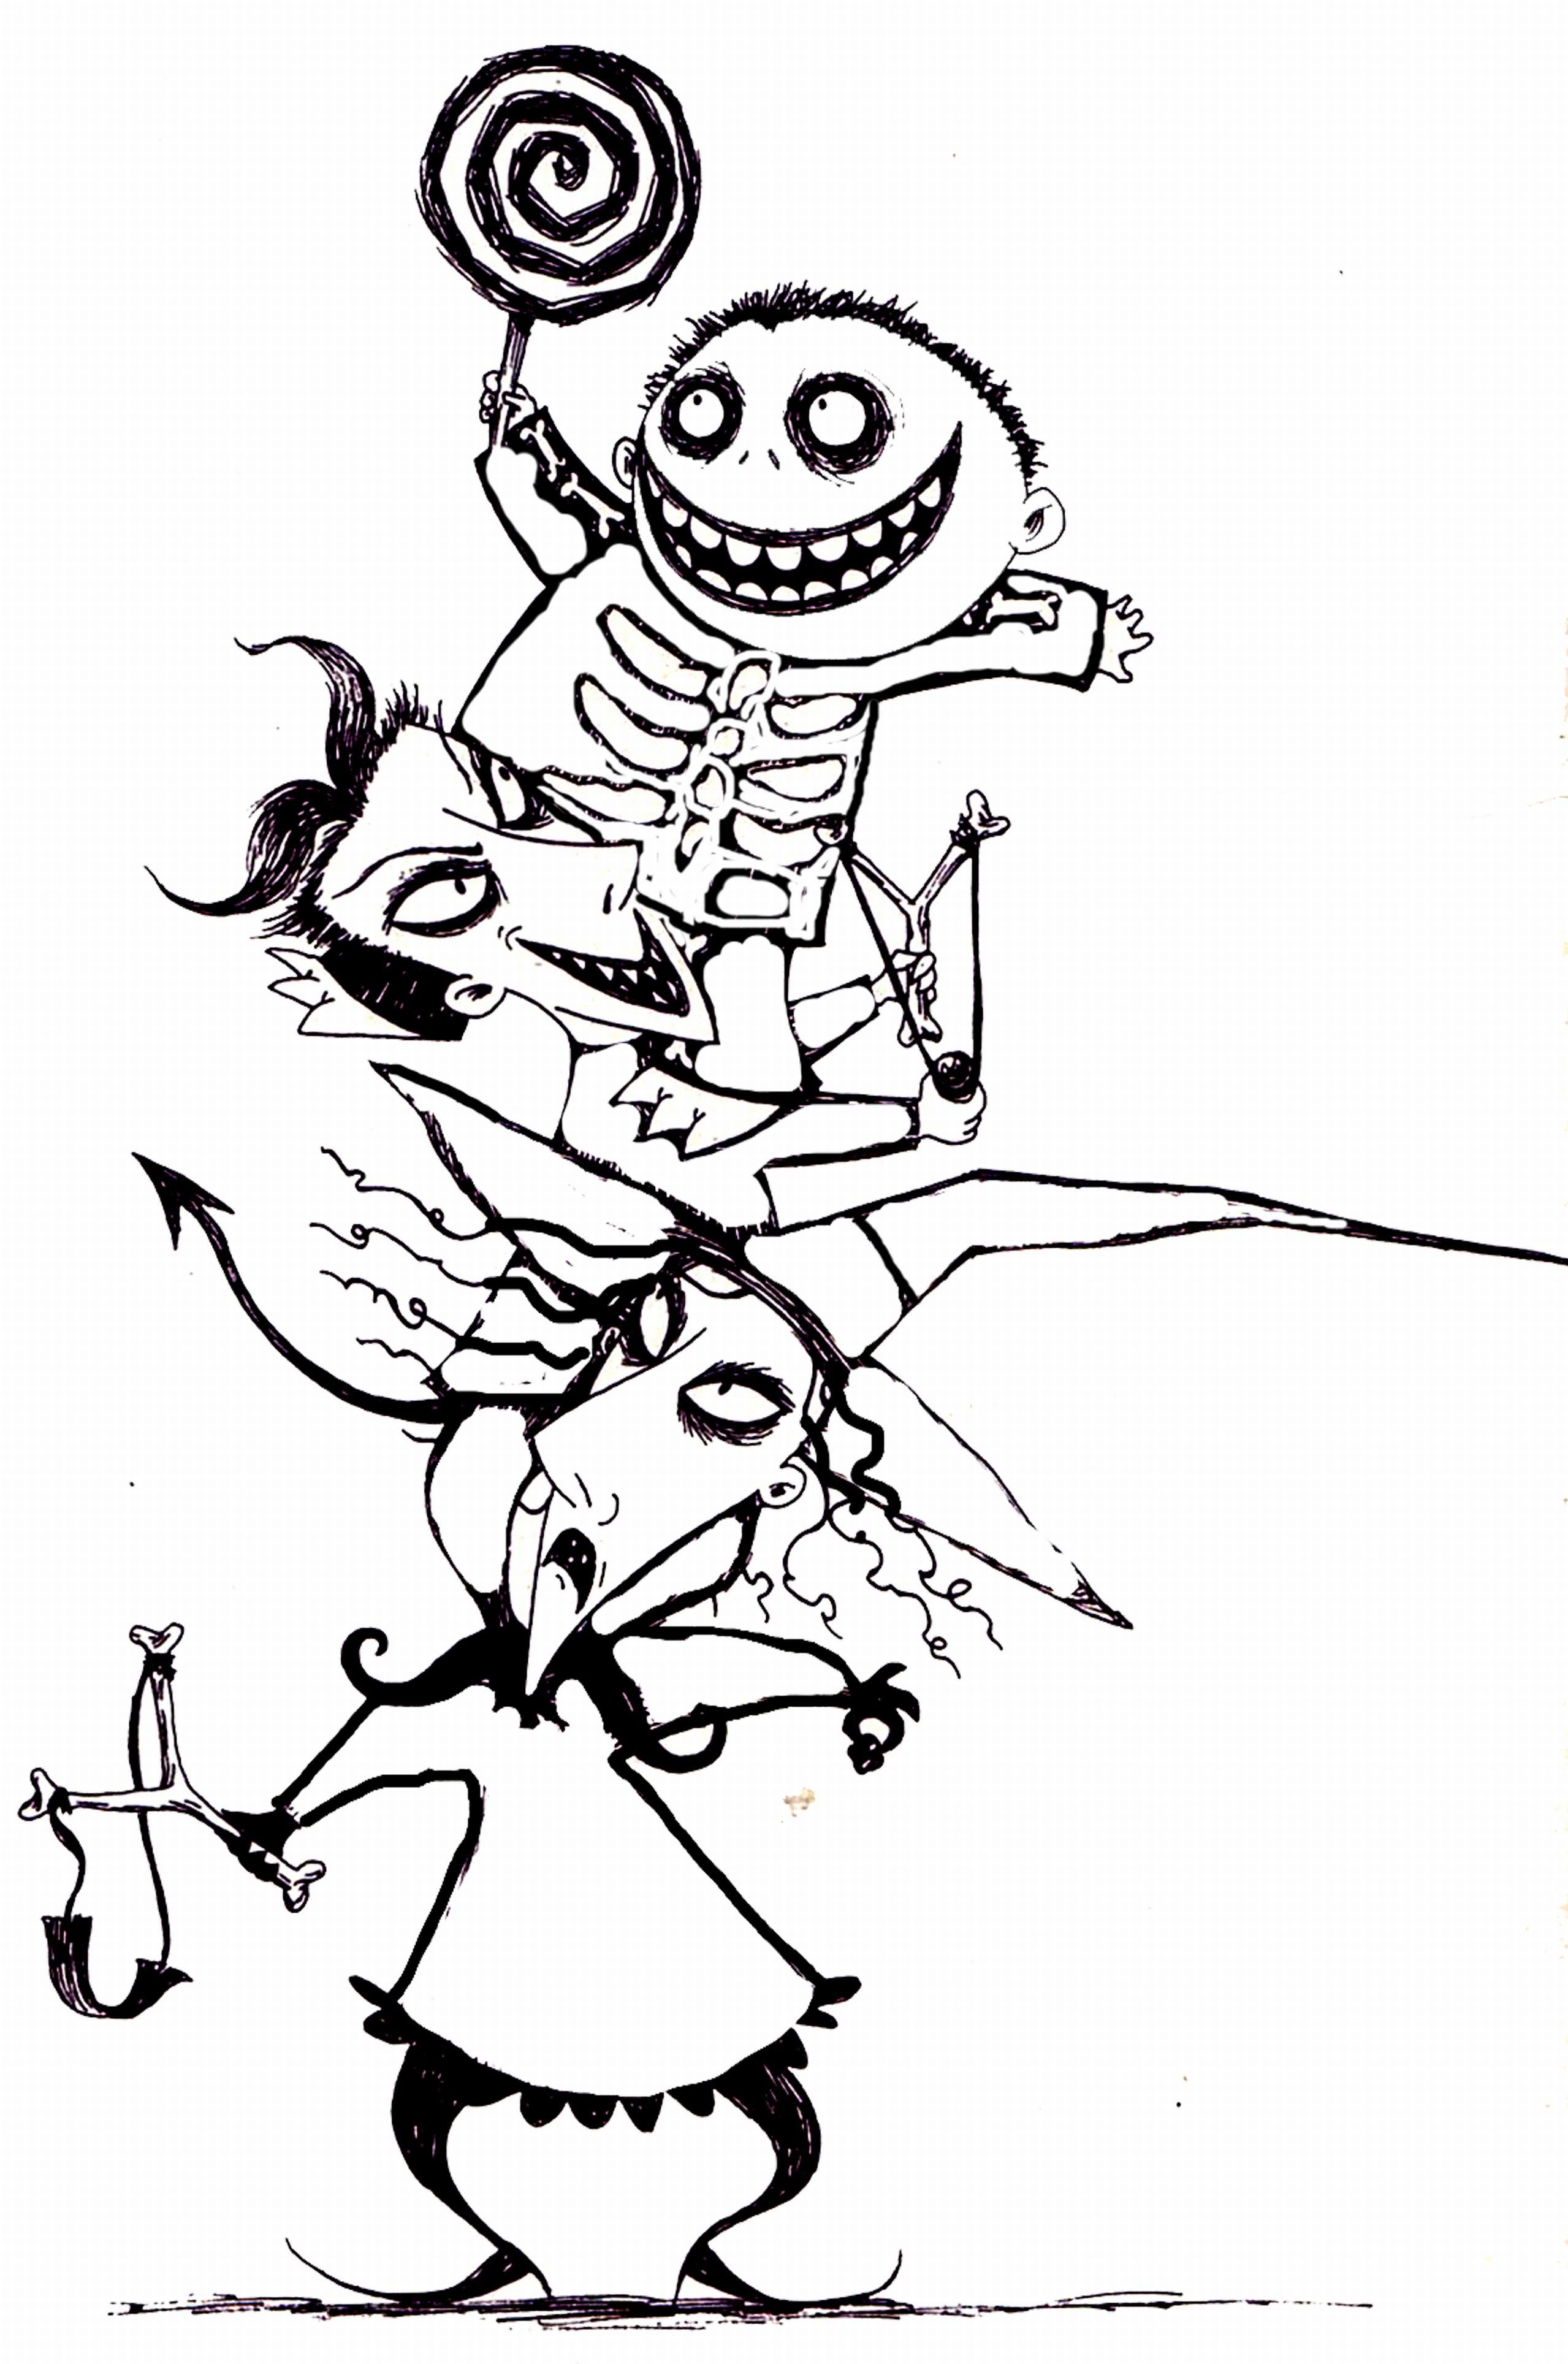 The Nightmare before Christmas Coloring Pages  to Print 10k - Free For Children